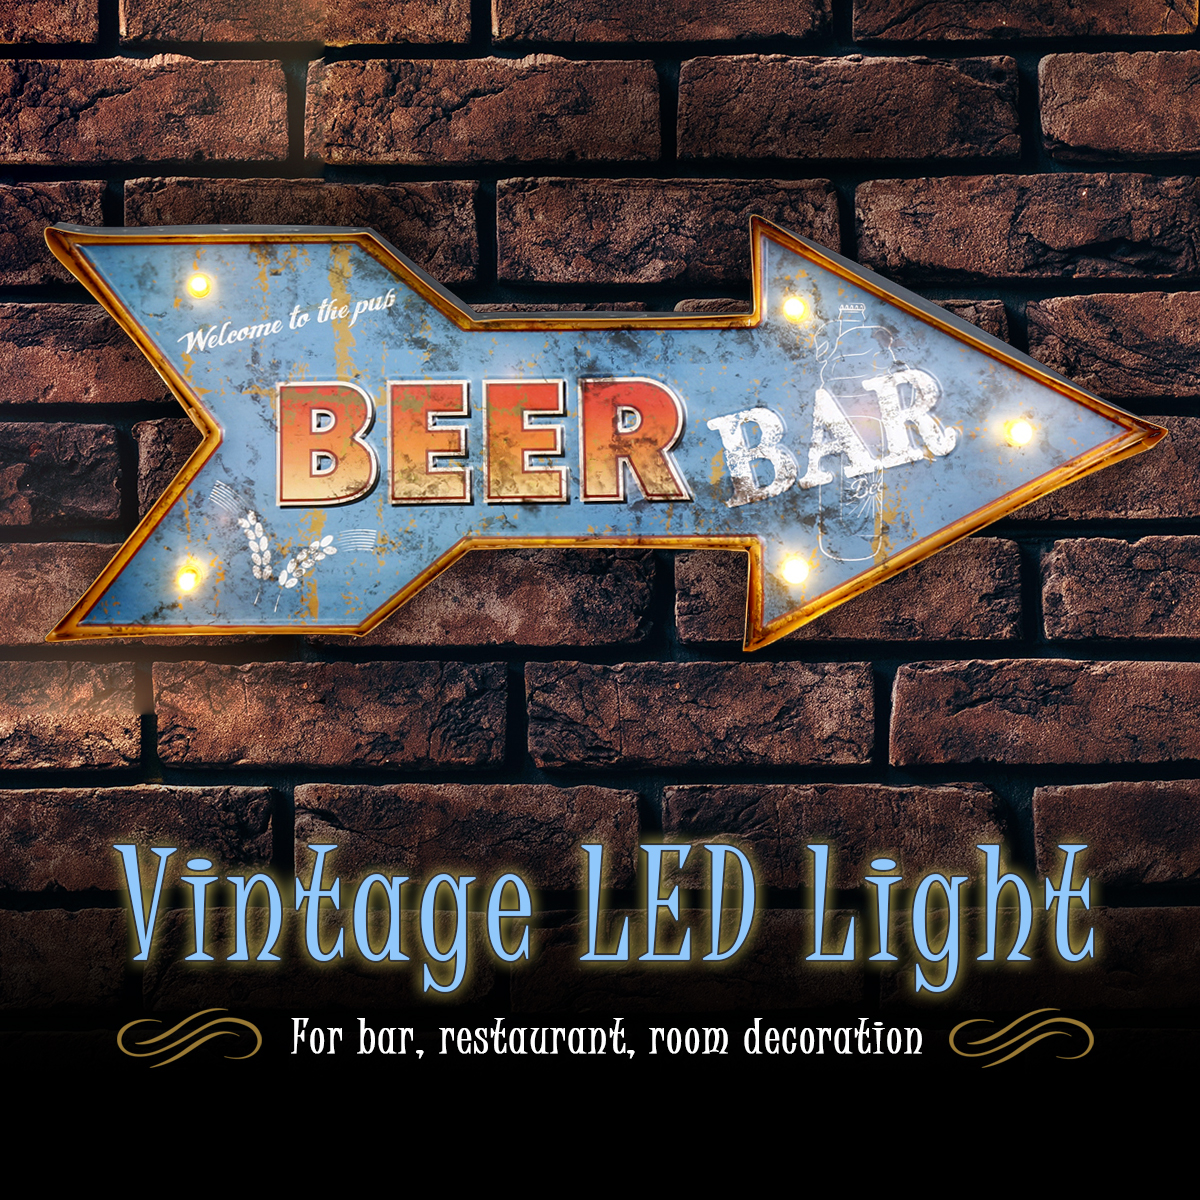 LED Mental Light Vintage Arrow Beer Sign Bar Game Room Wall Hangings Decorations Home Decor серьги эстет серьги